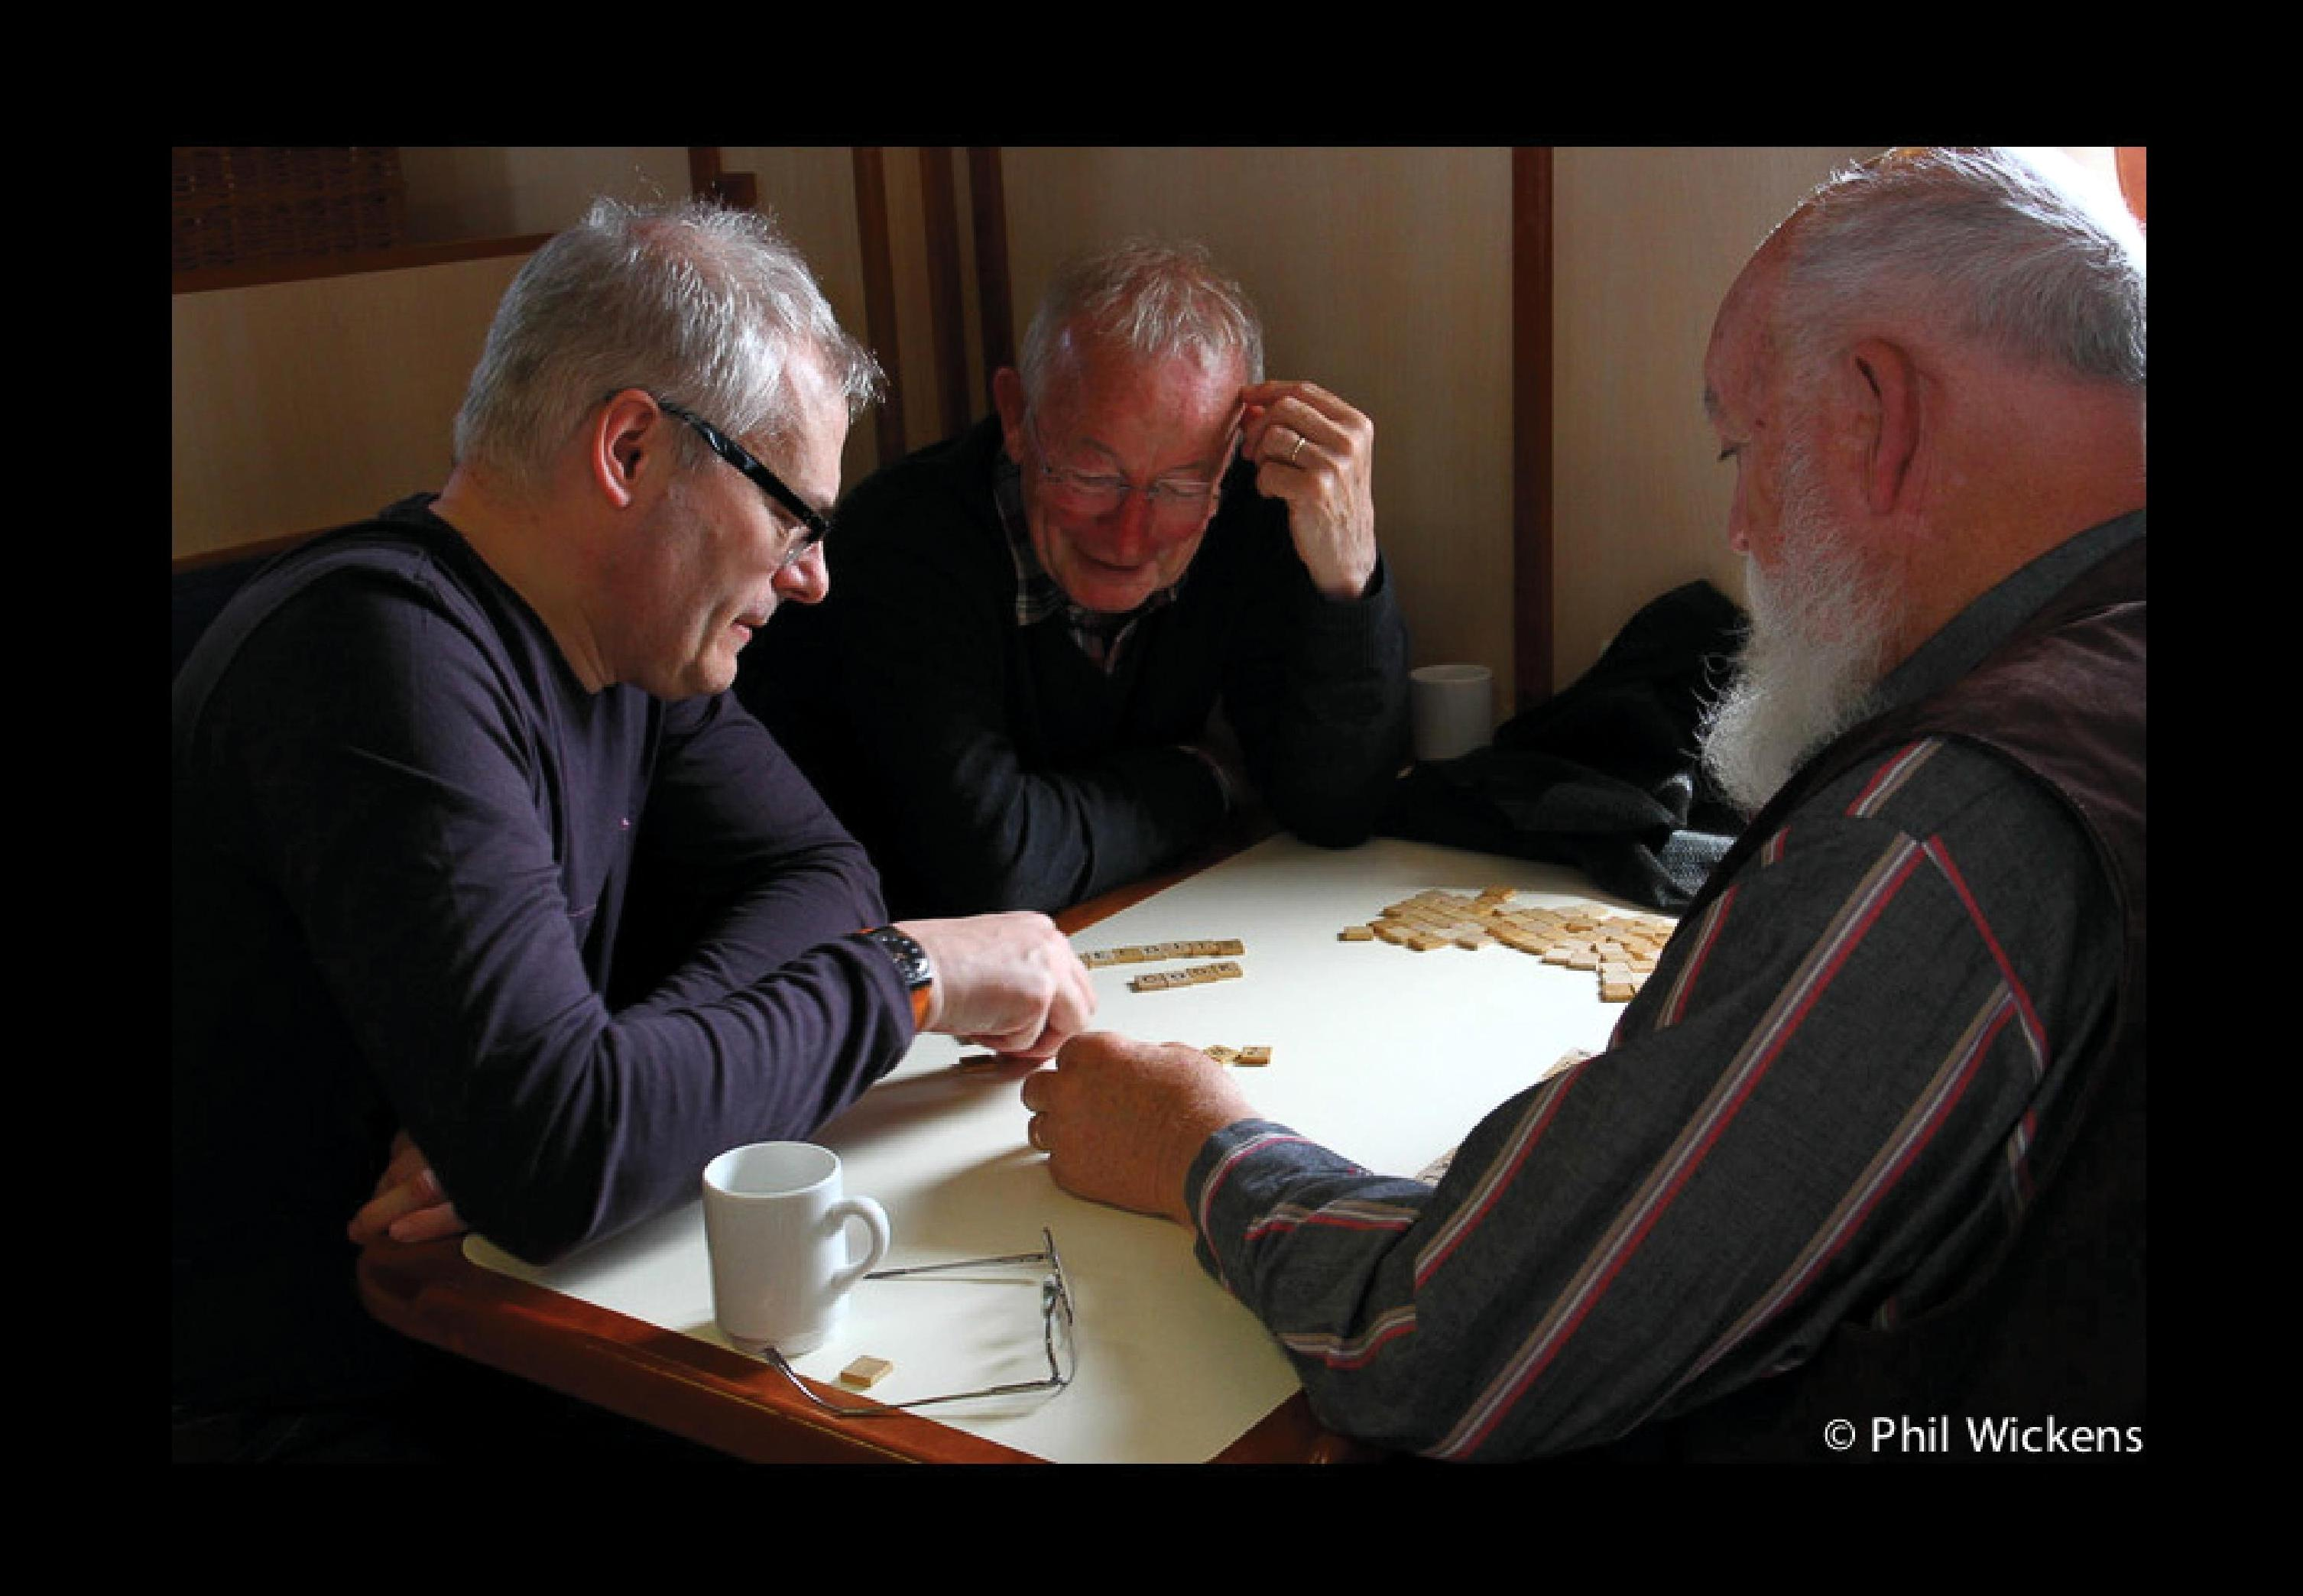 Keith playing a word game with Nicholas Humphrey and Daniel Dennett